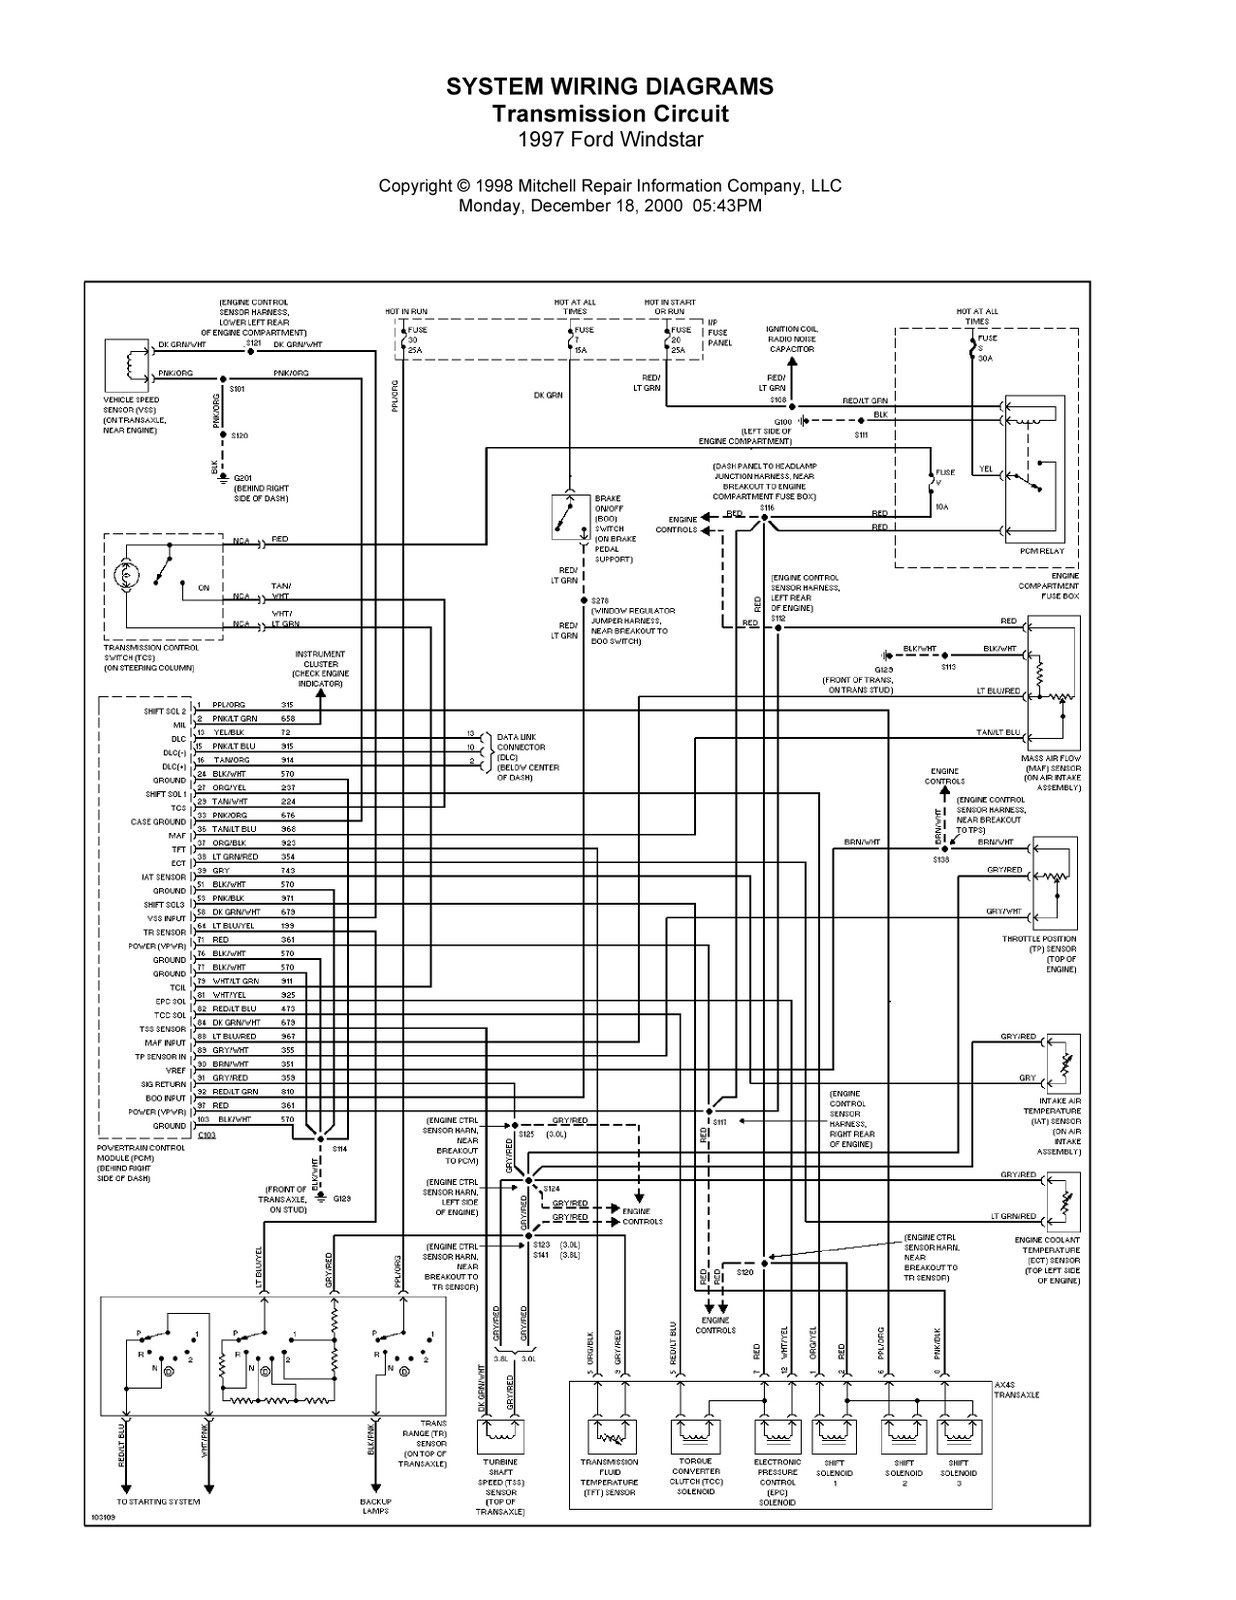 1997 Ford Windstar Complete System Wiring Diagrams Ranger Ecm Schematic Saturday May 28 2011 Herein The Going To Provide Are